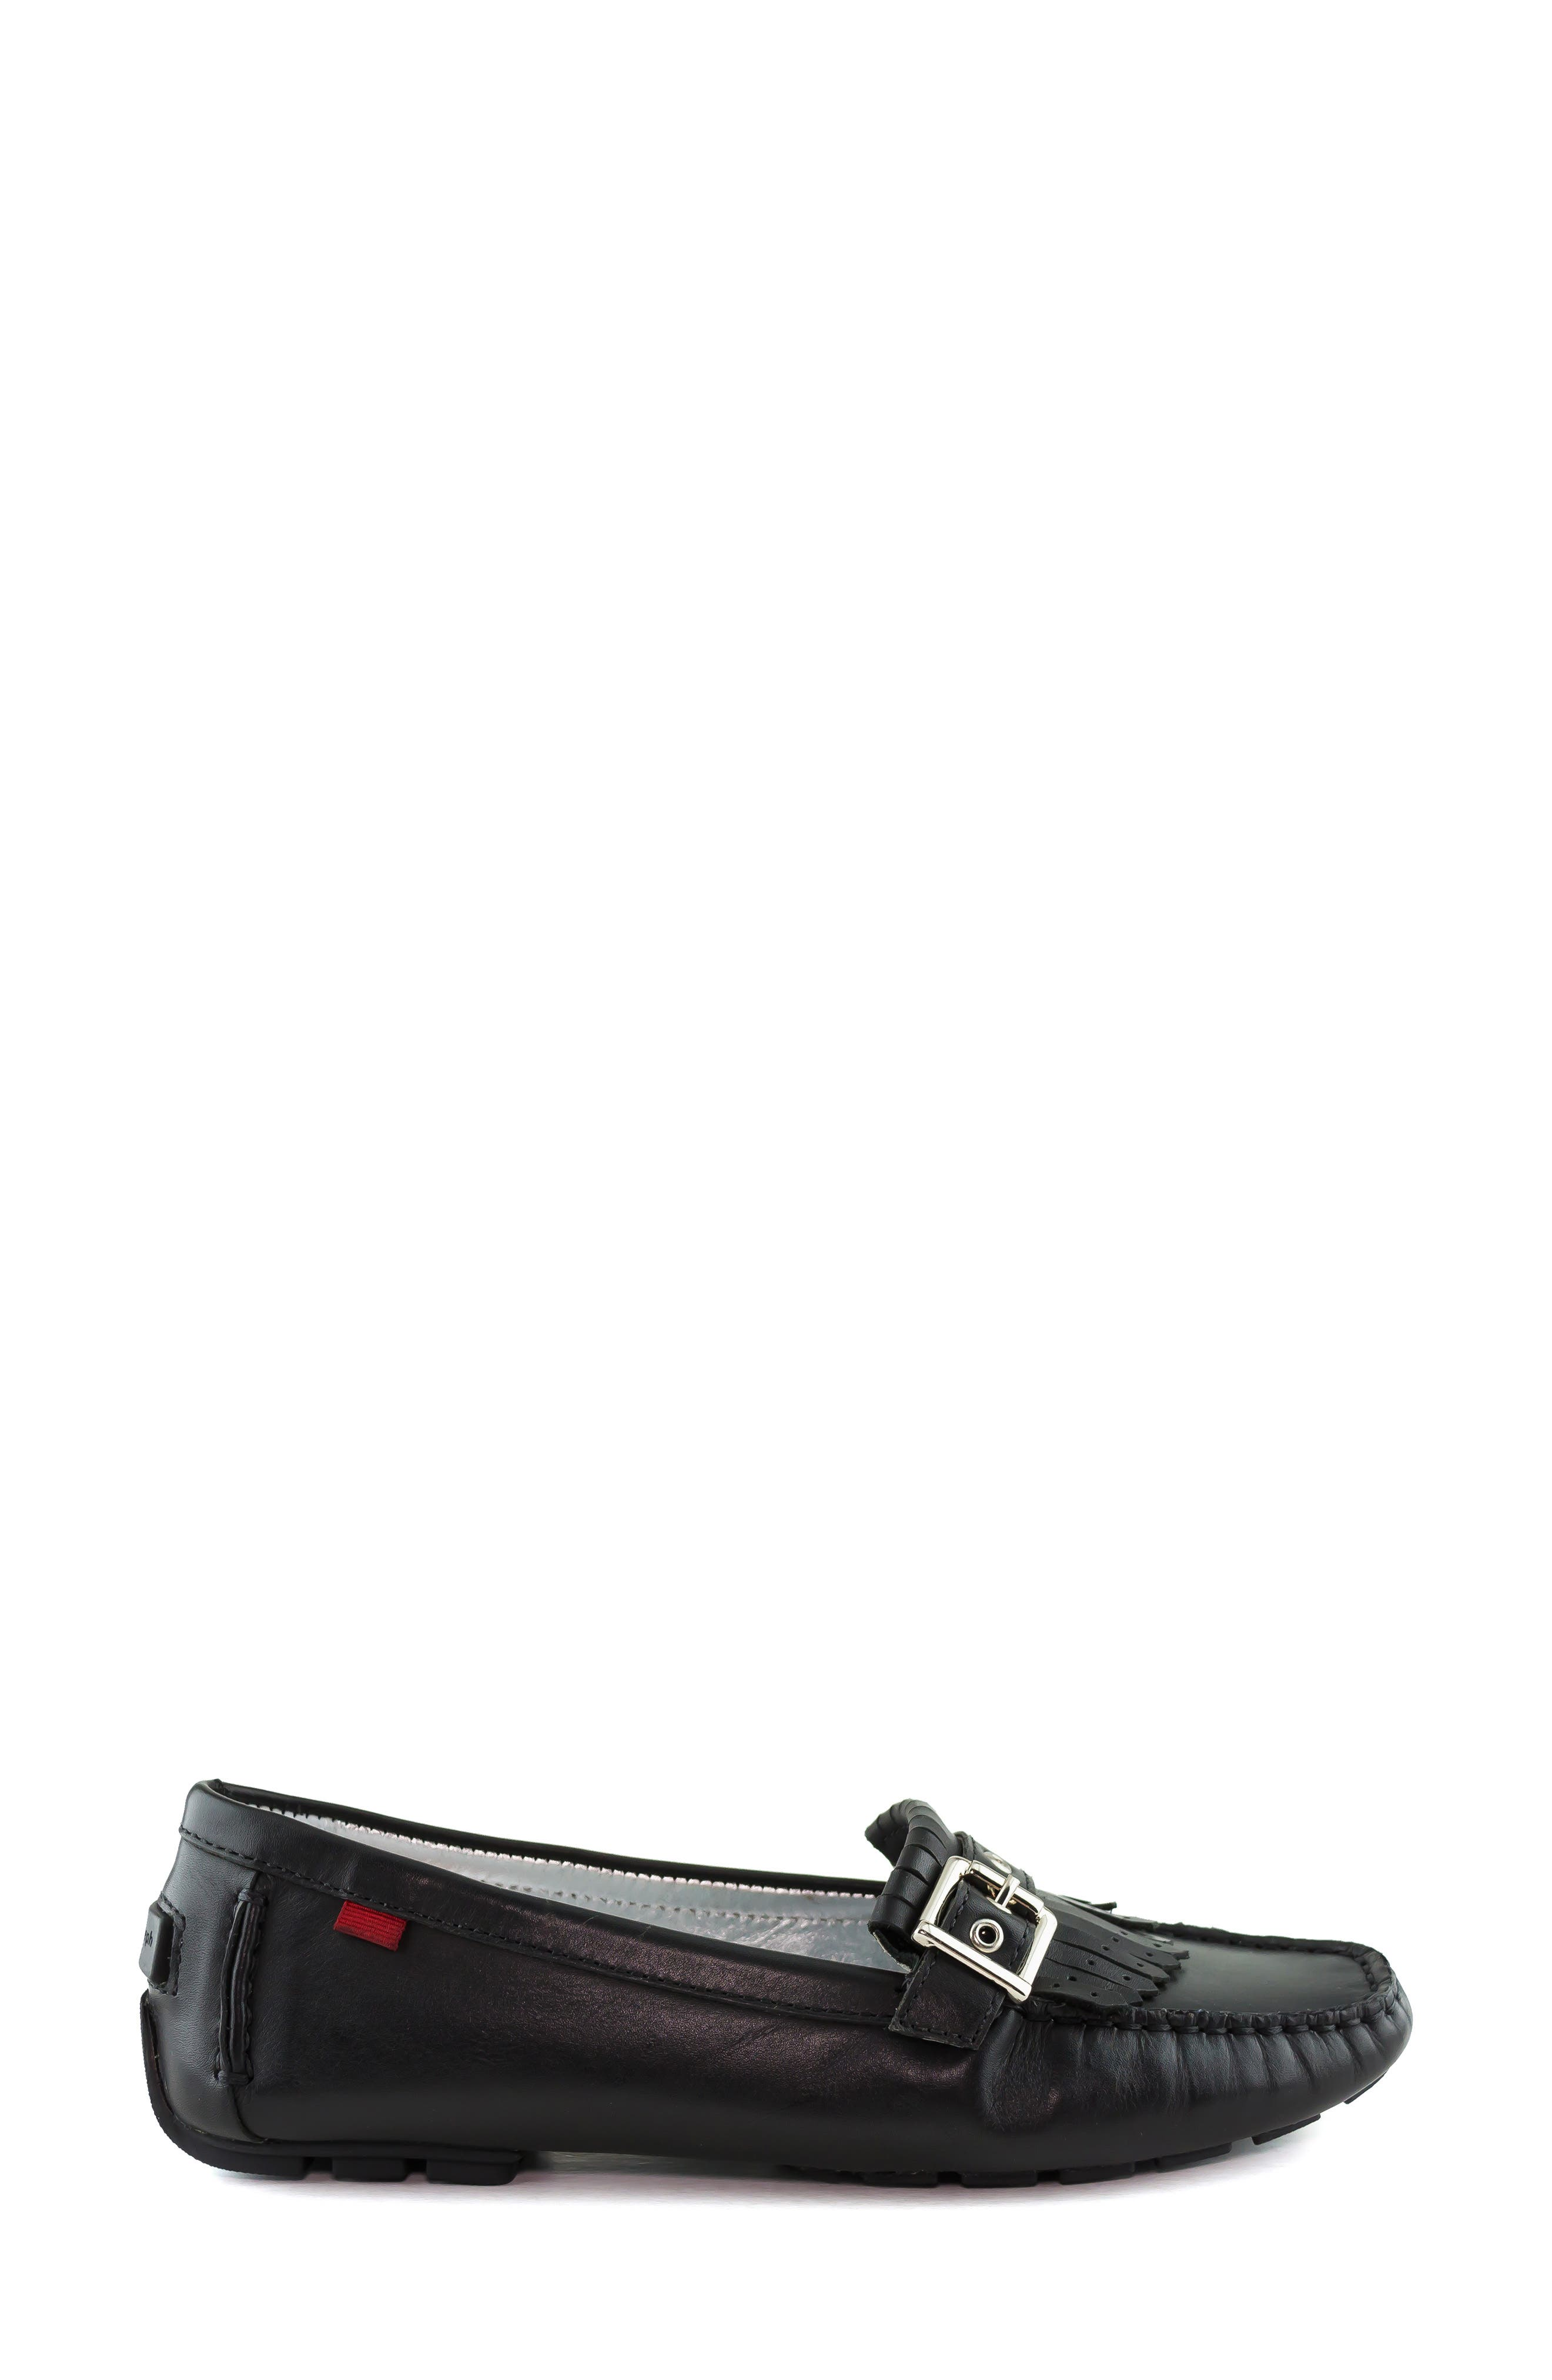 MARC JOSEPH NEW YORK, South Street Loafer, Alternate thumbnail 3, color, BLACK LEATHER